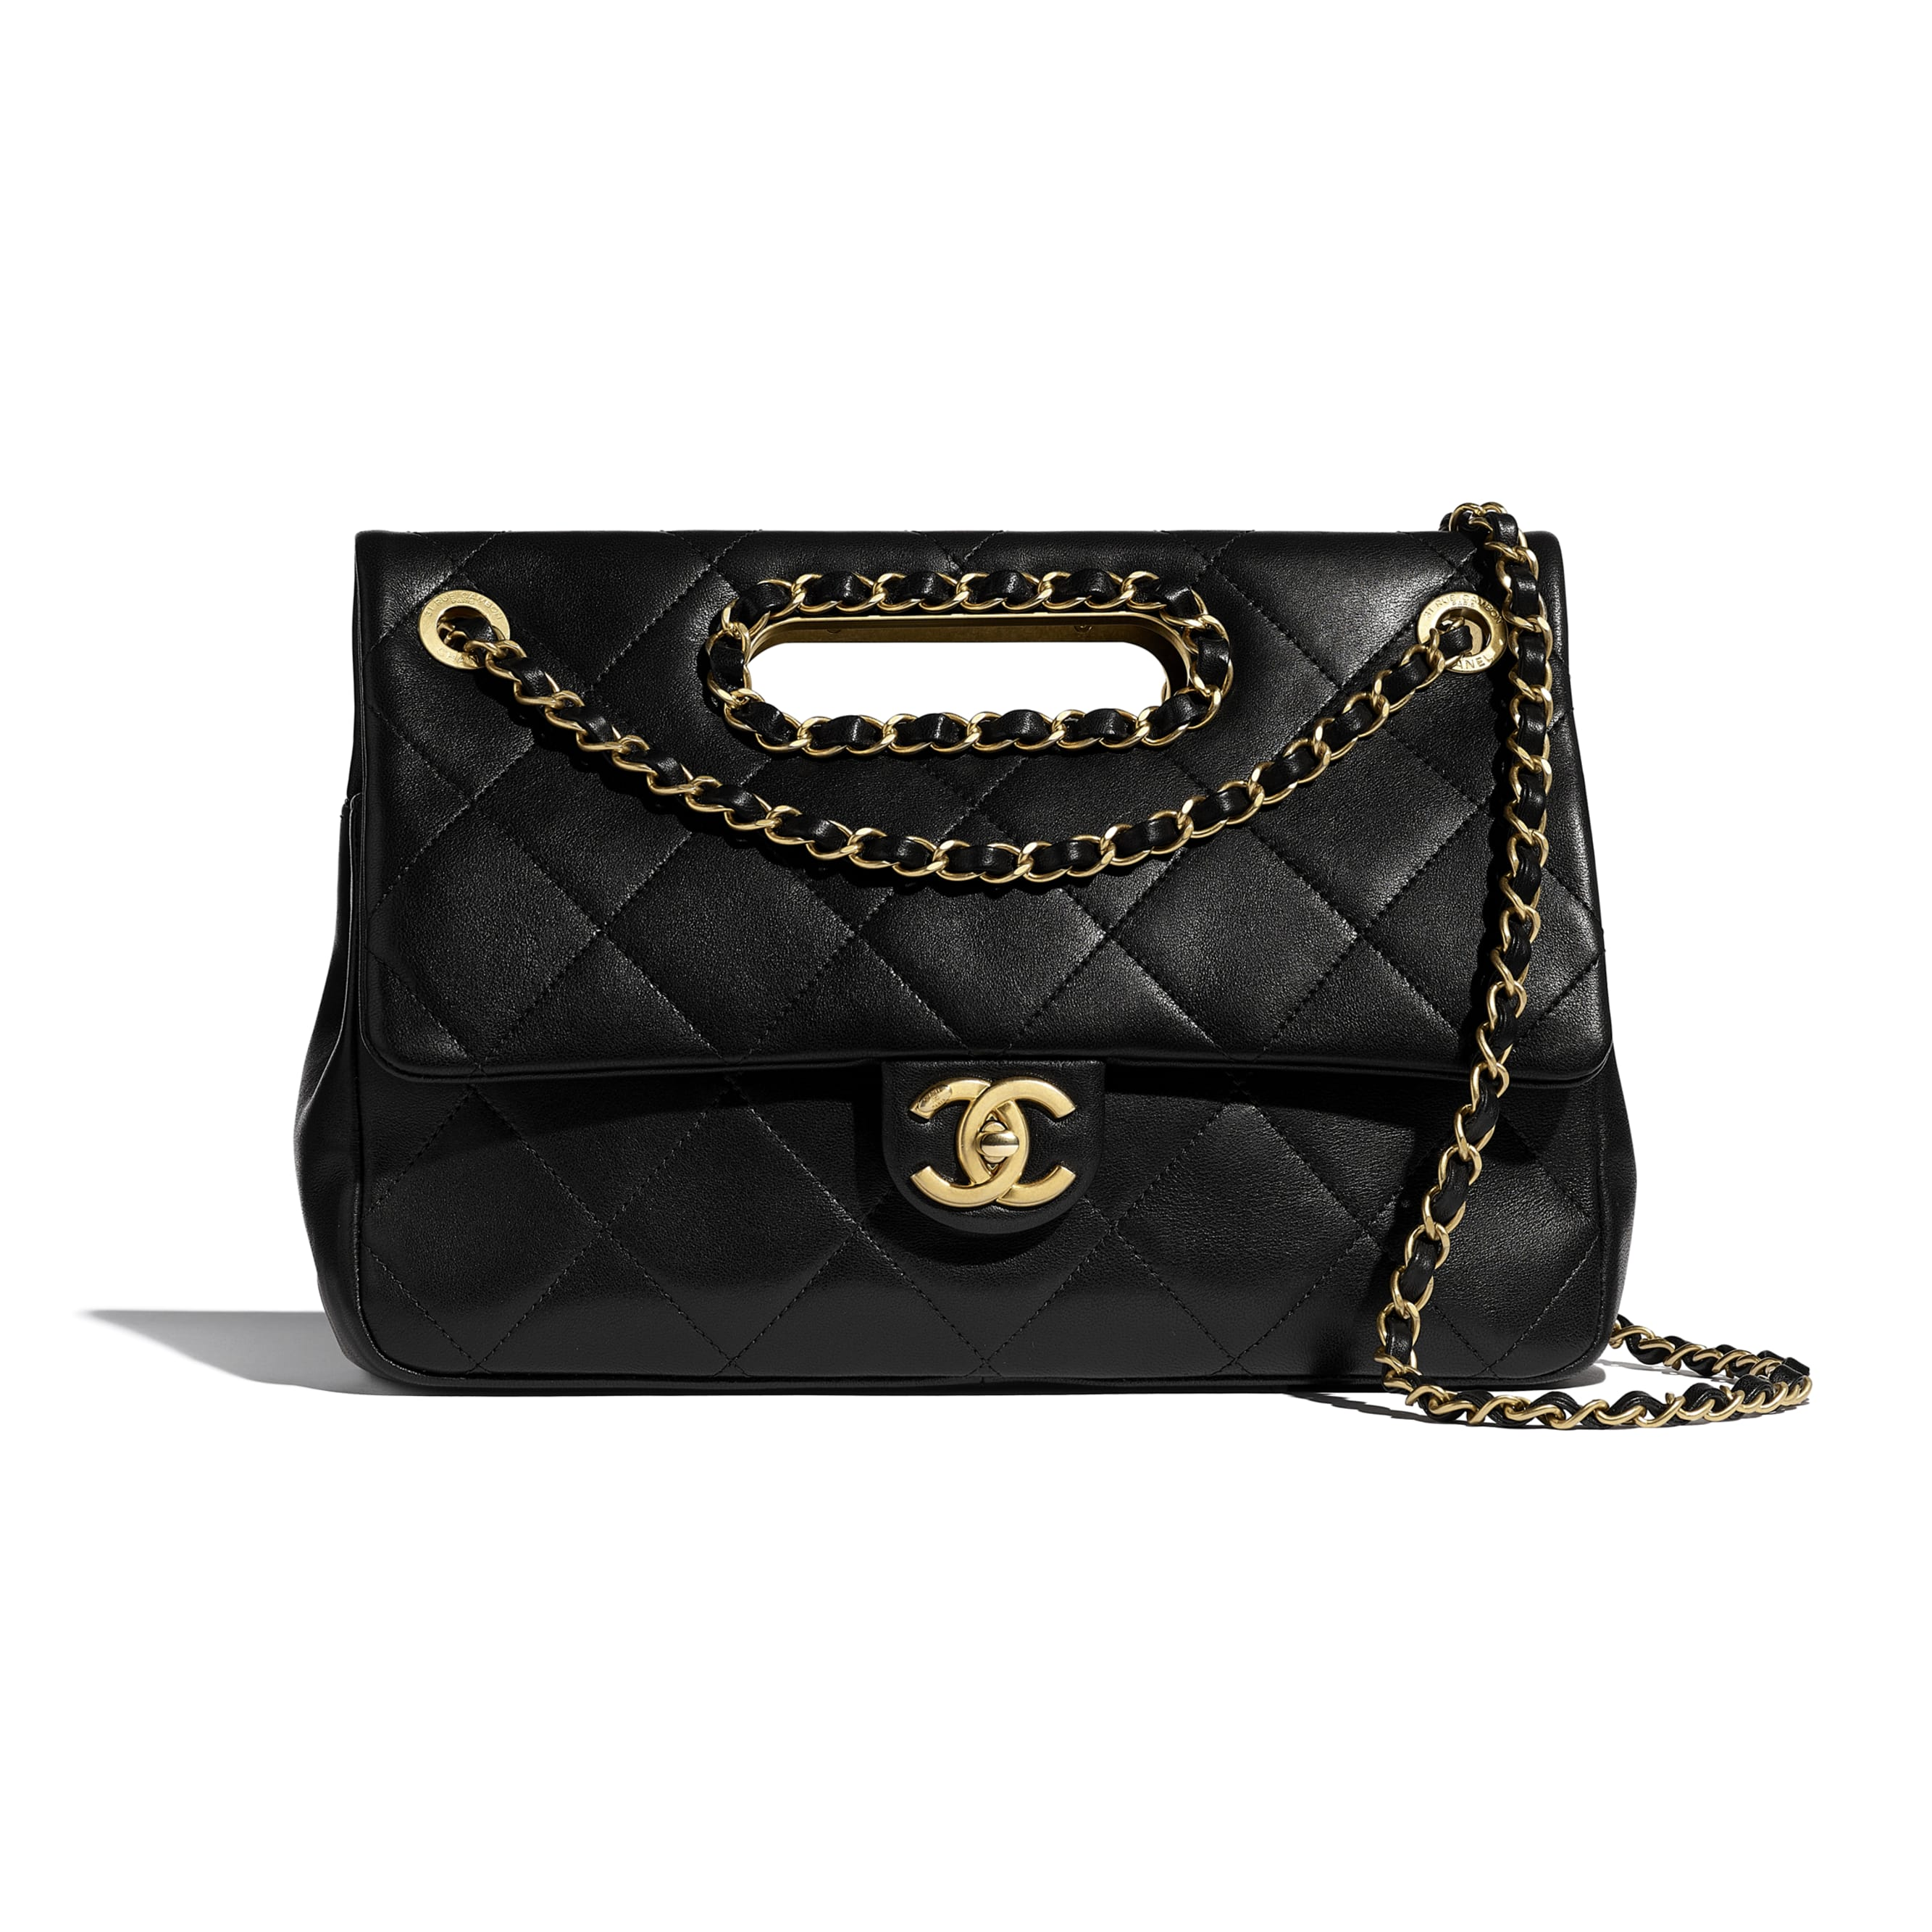 Flap Bag - Black - Lambskin & Gold-Tone Metal - CHANEL - Default view - see standard sized version